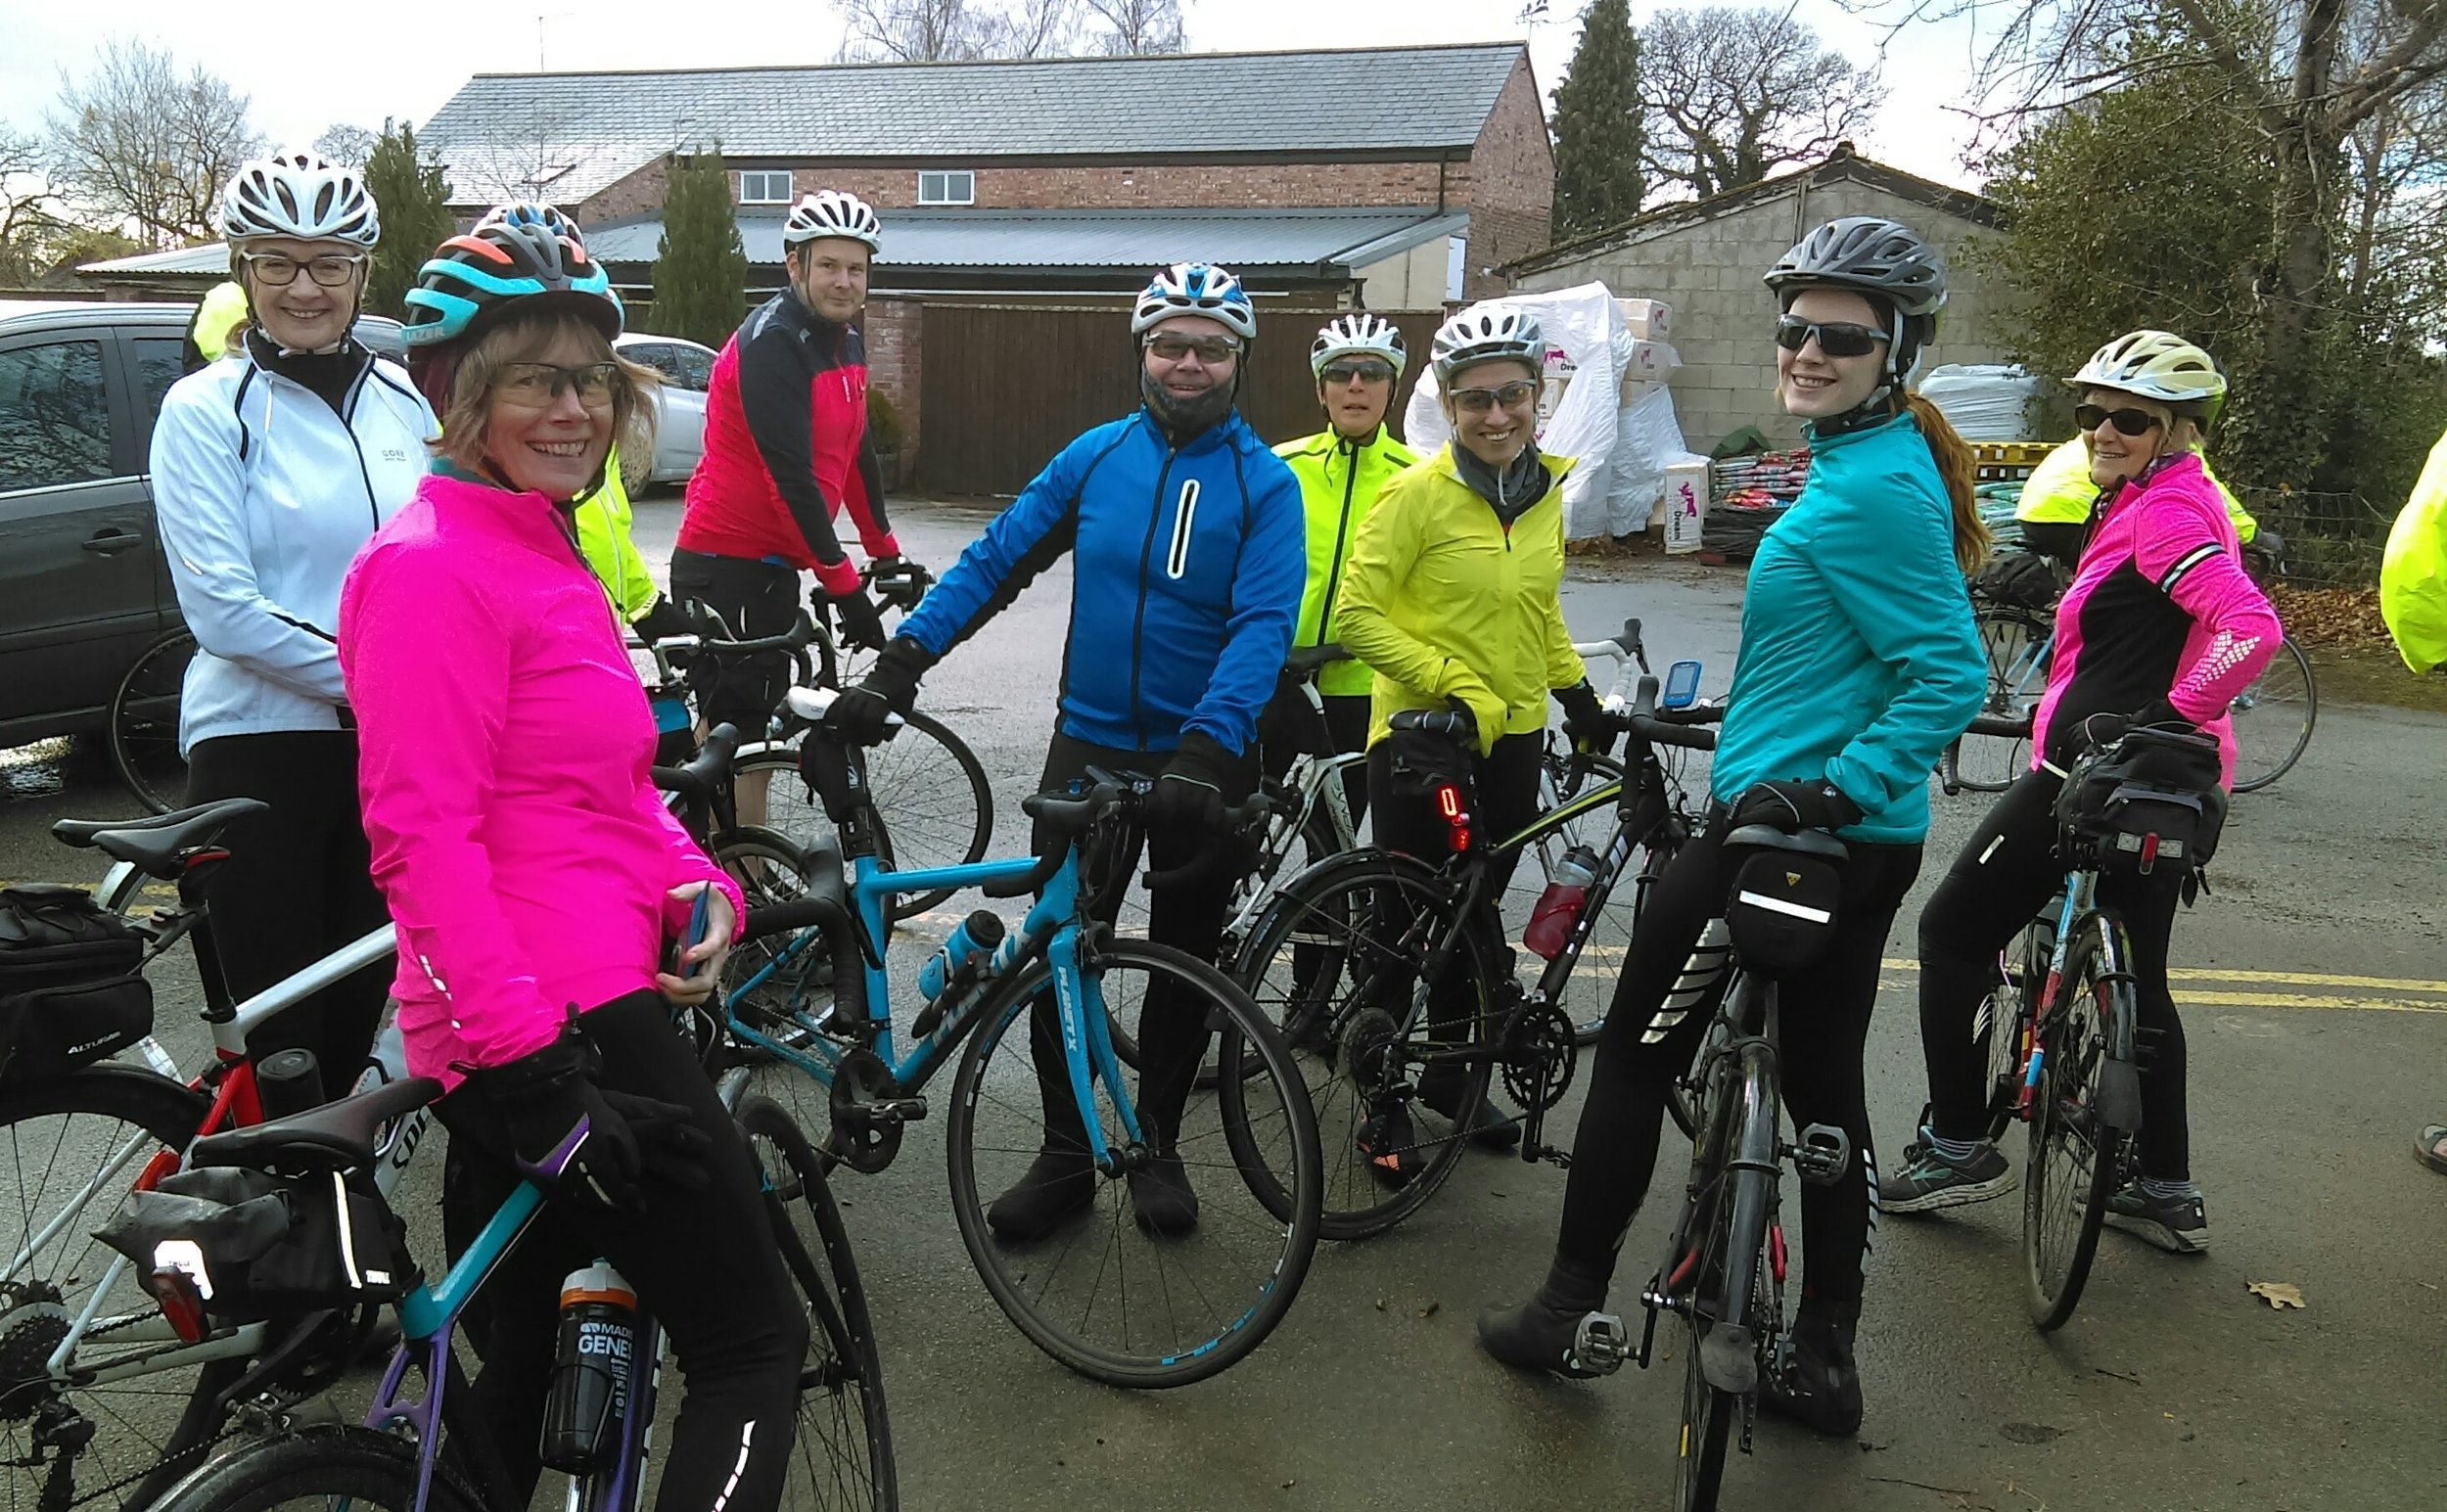 The more colourful riders!